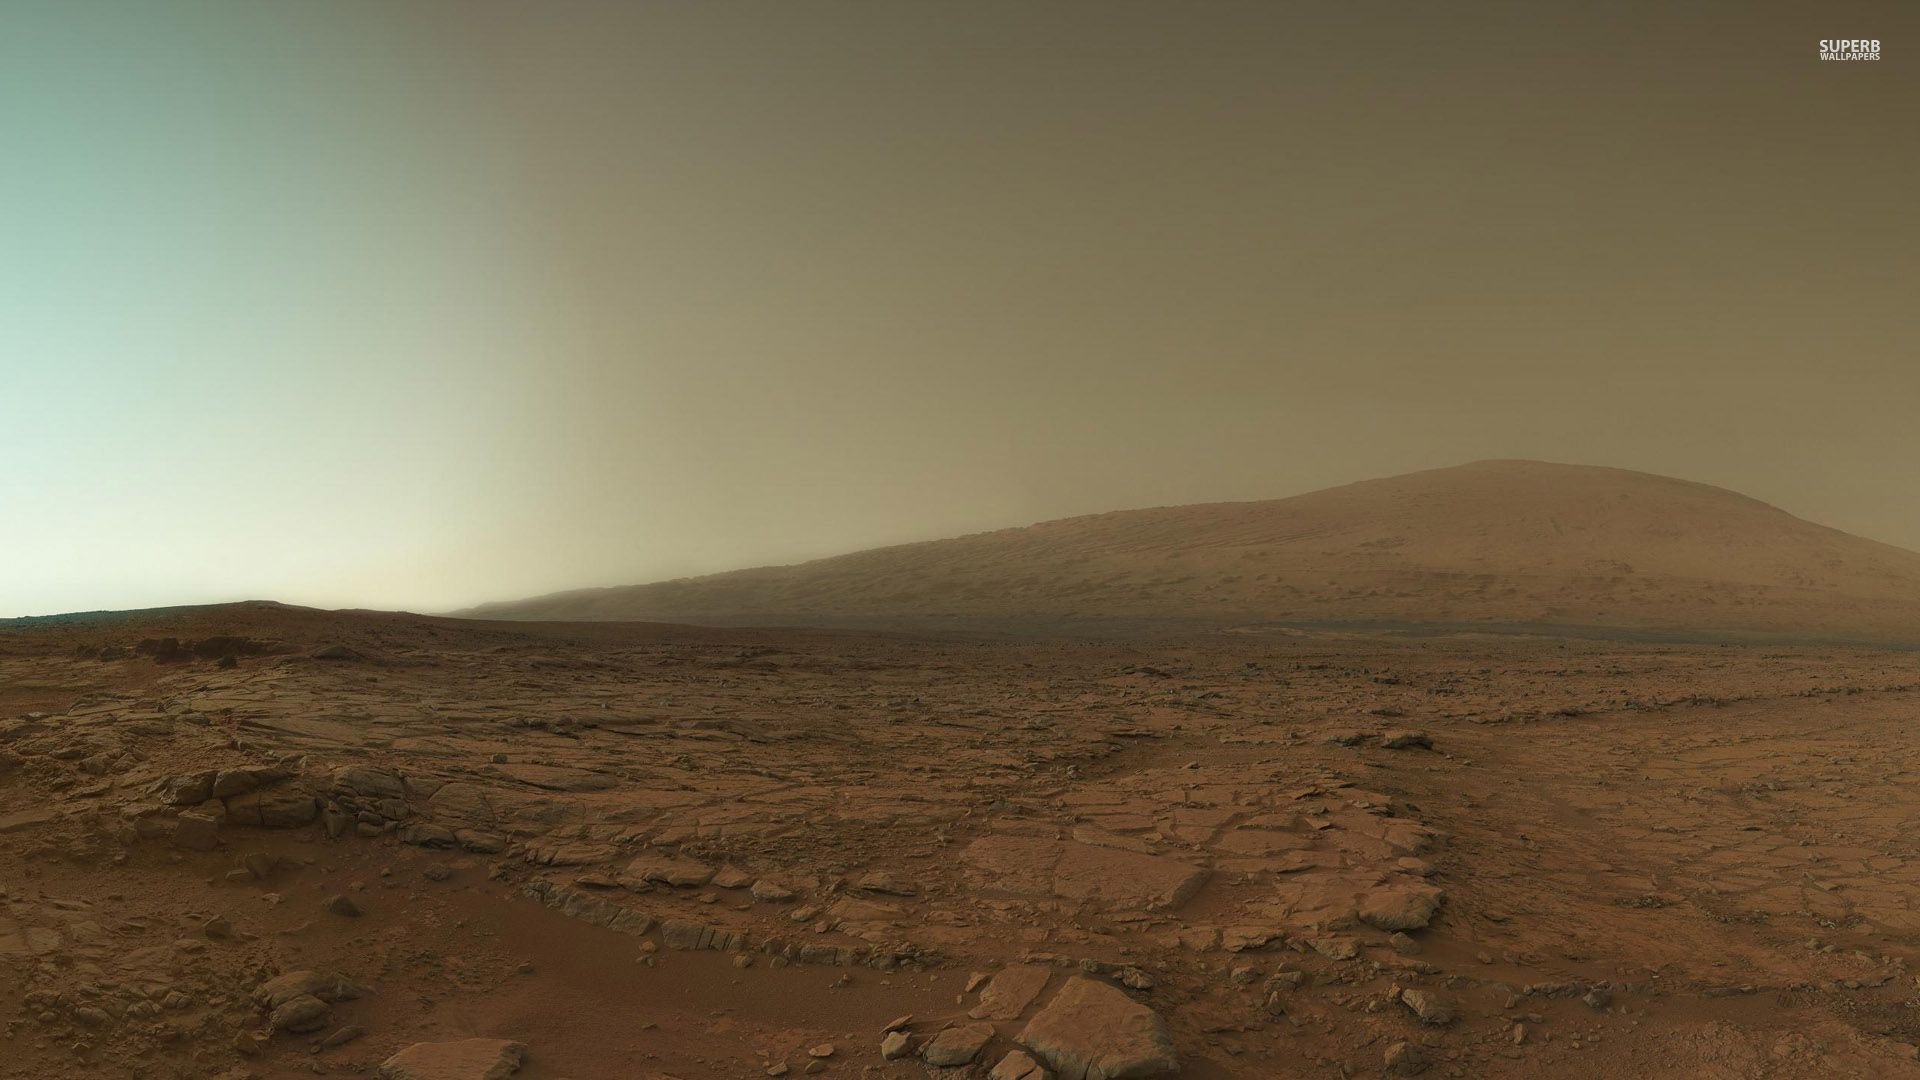 Mars Surface Wallpaper